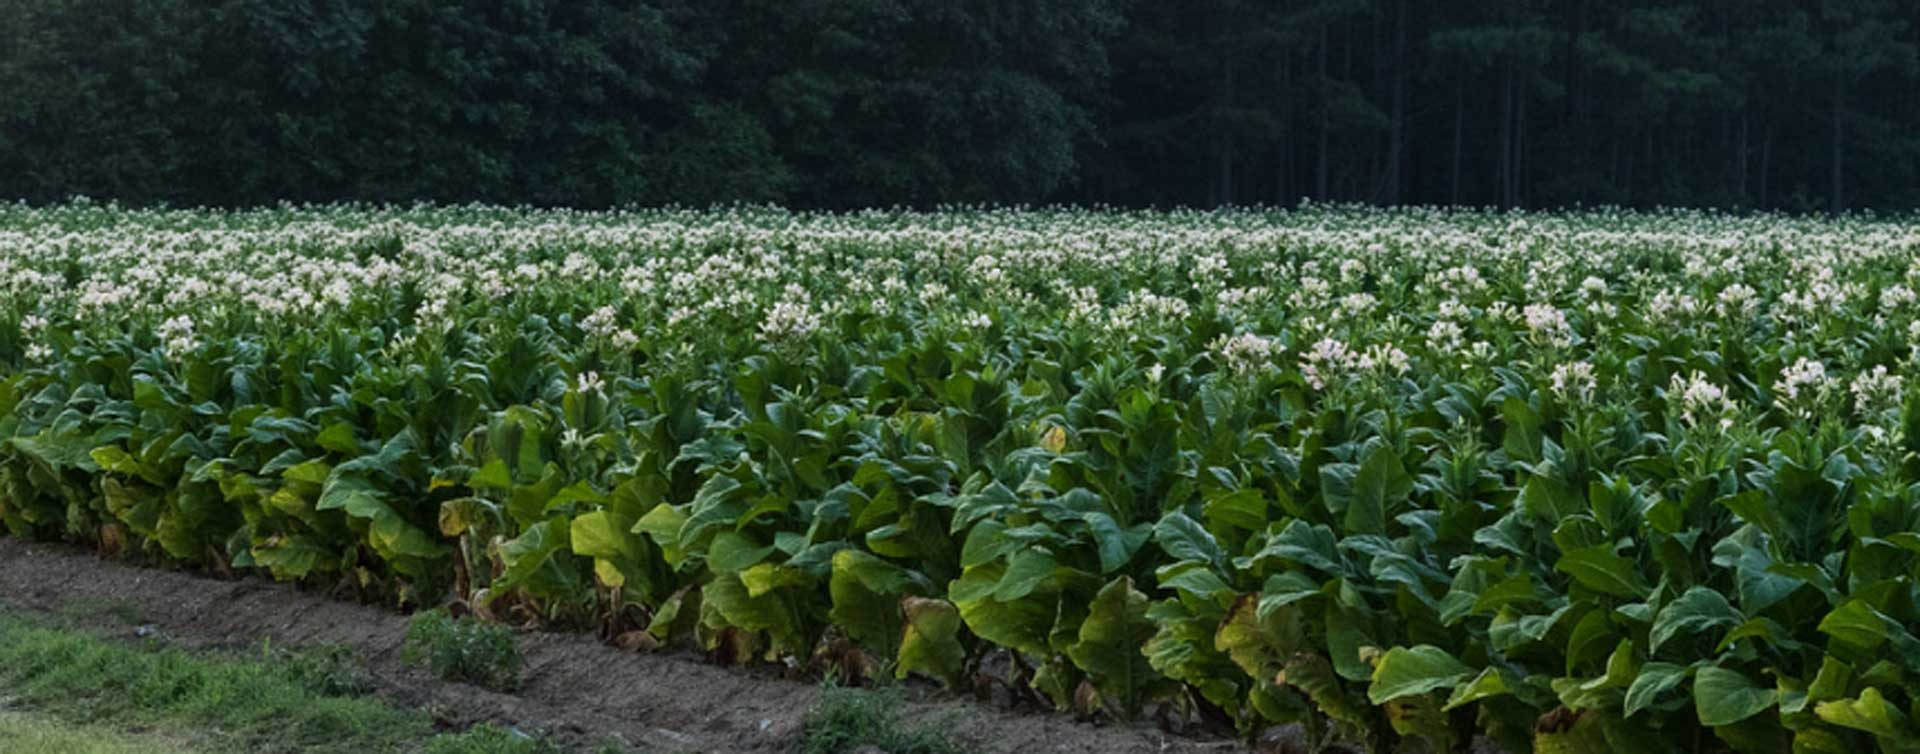 Tobacco Field, Moore County, NC